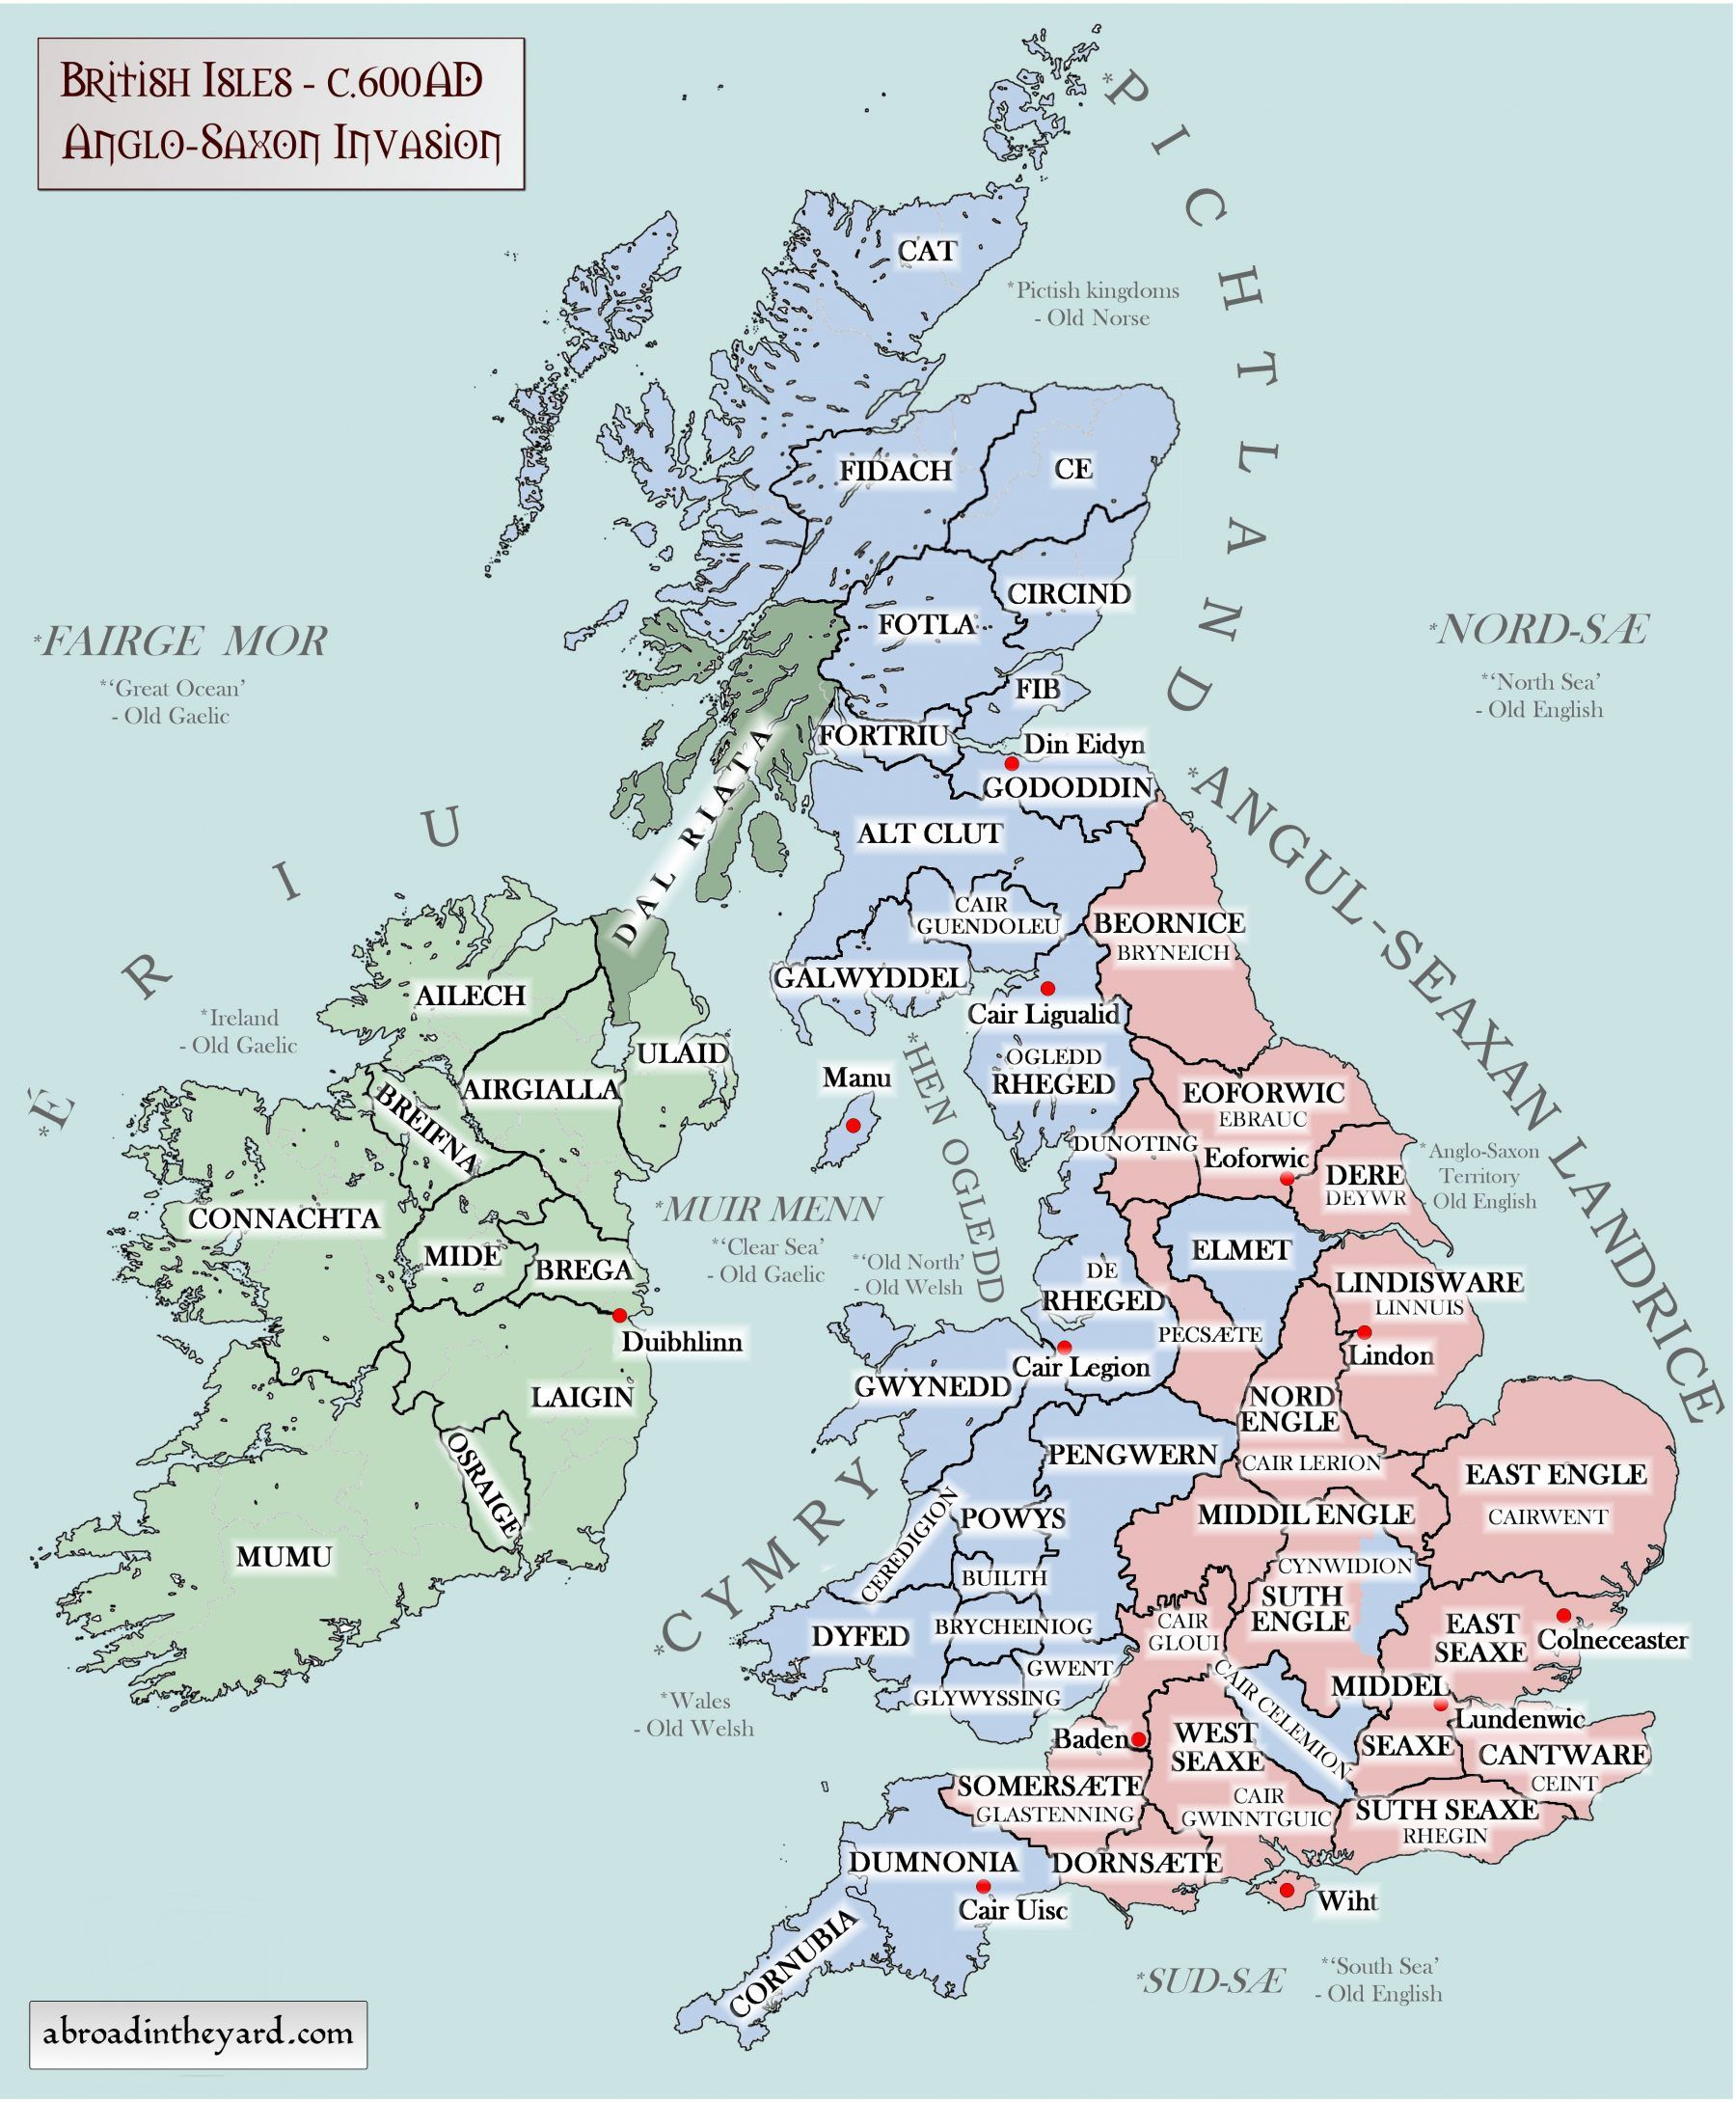 Pin by Melinda Kent on Ancestry | Pinterest | Anglo saxon, Map of